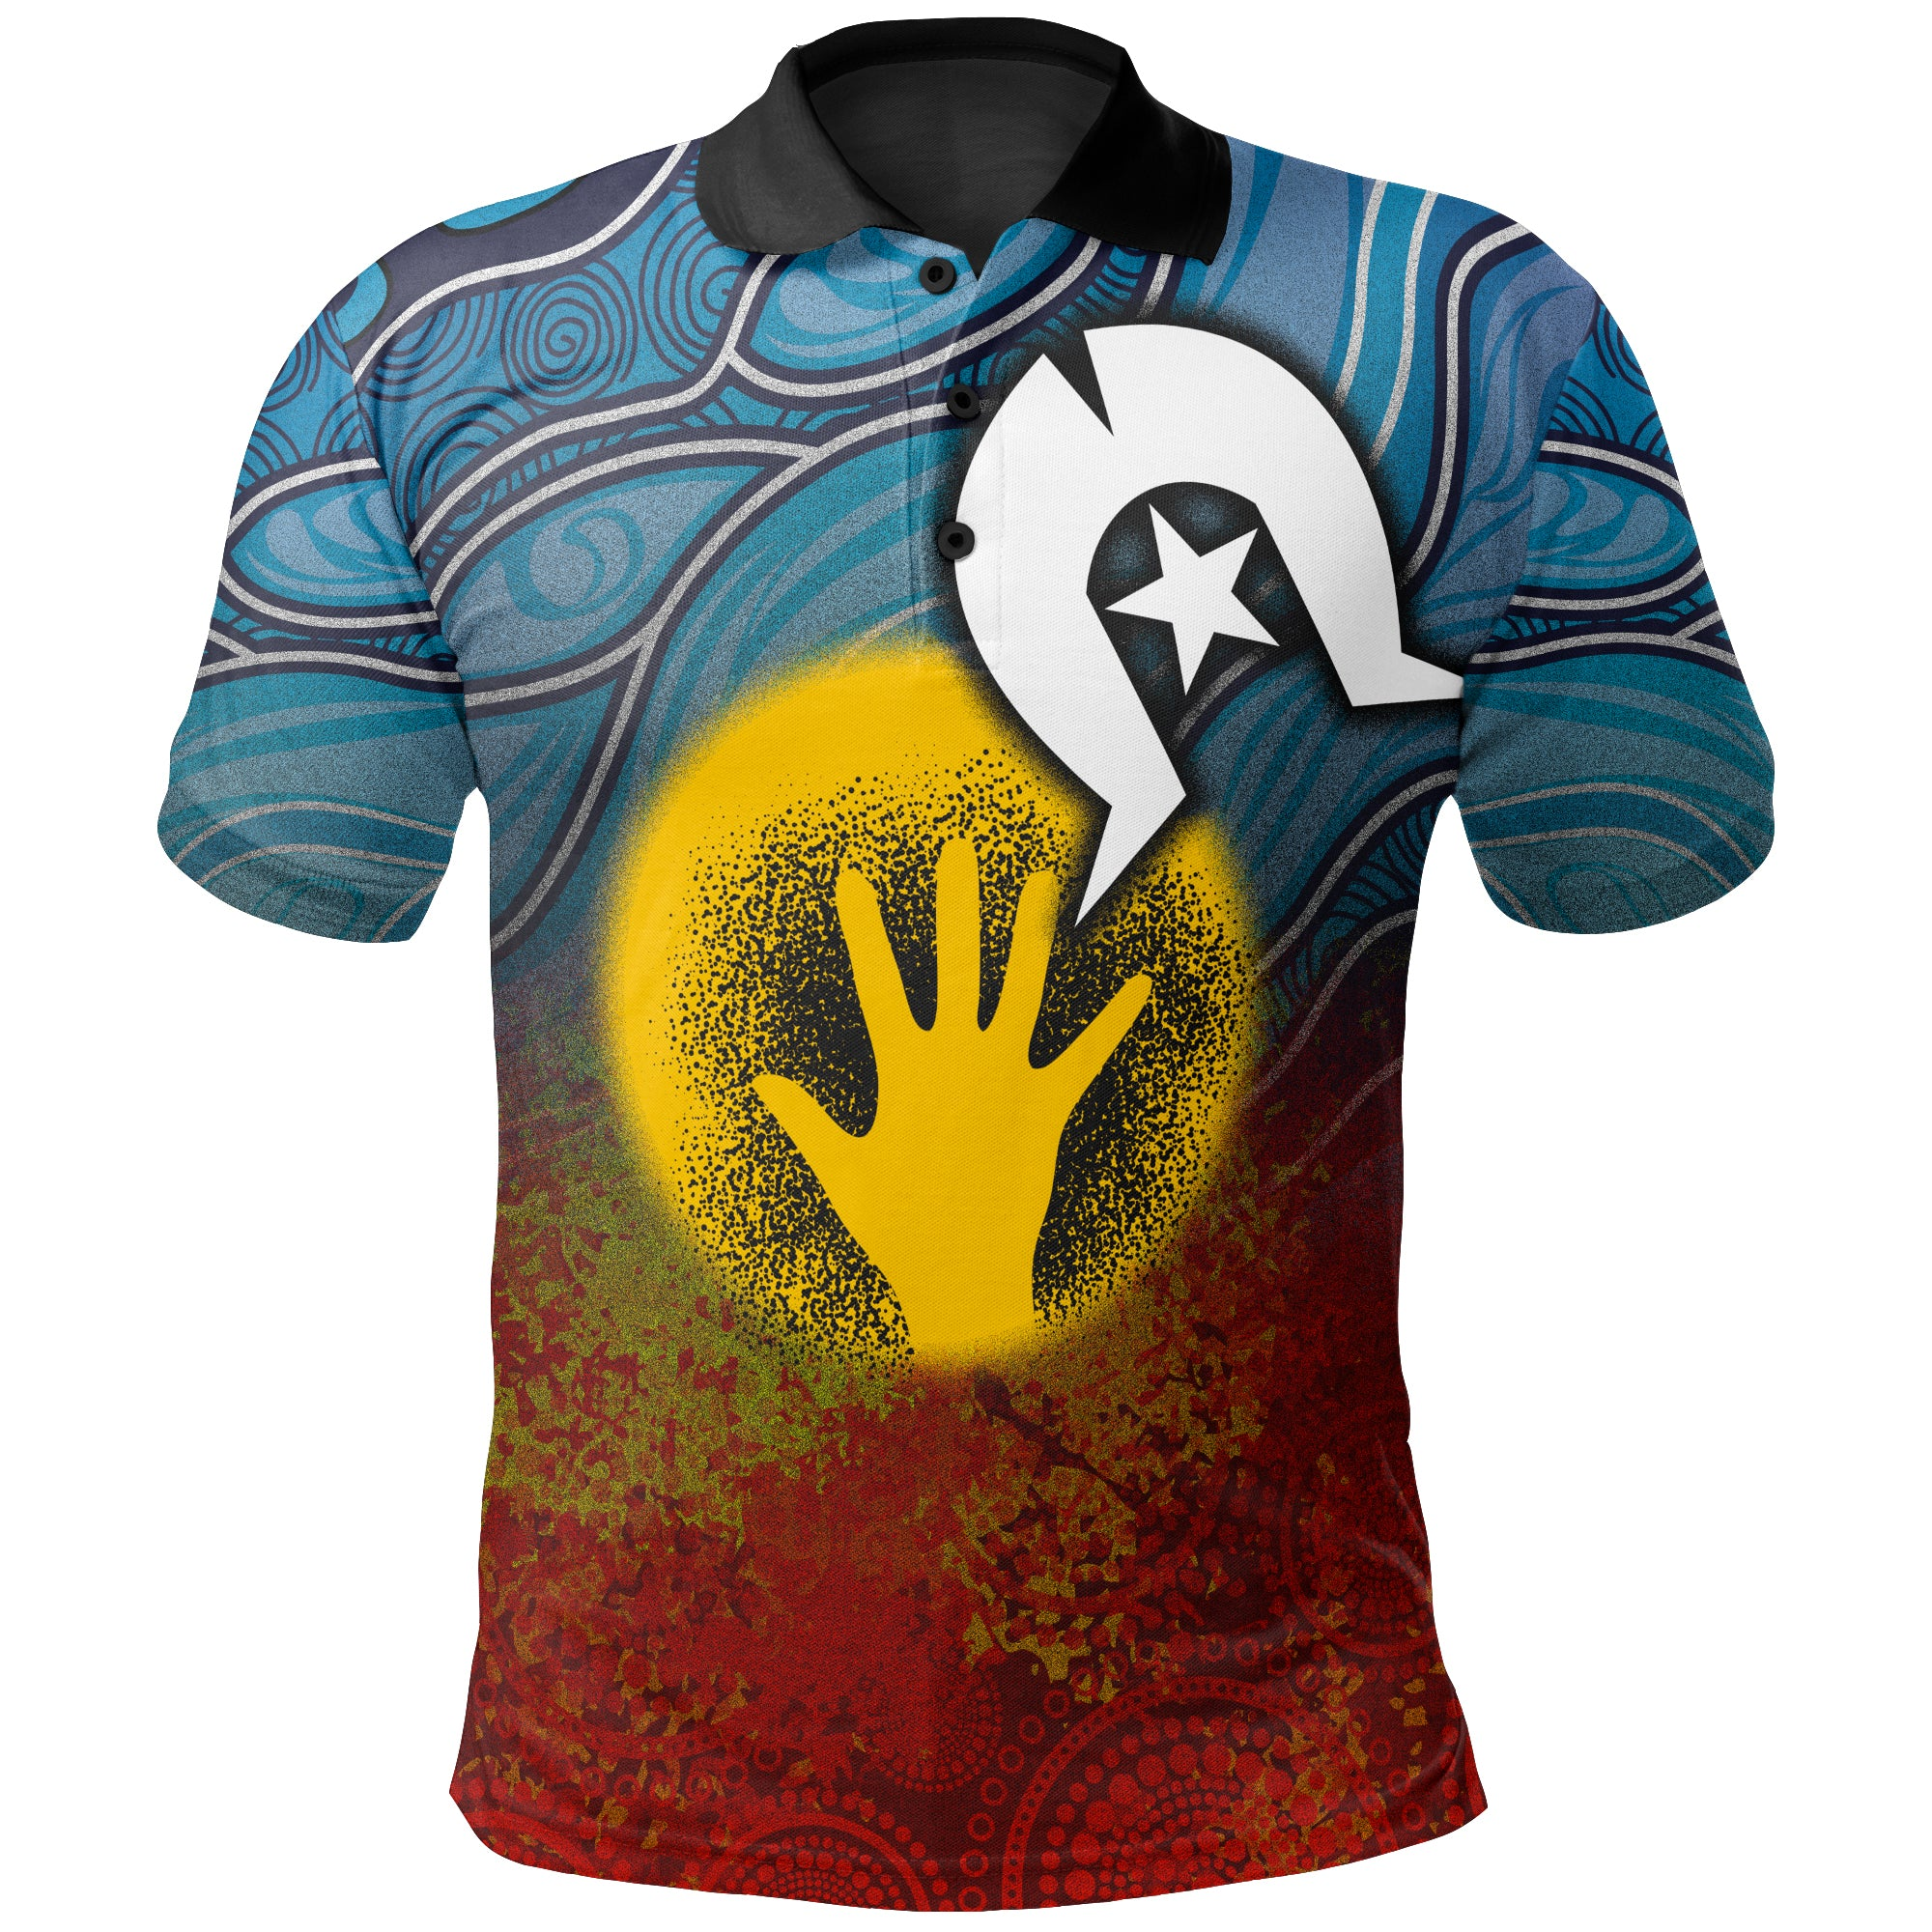 [Kids] 1stAustralia Aboriginal Kid Polo Shirt - Aboriginal and Torres Strait Islanders Flag